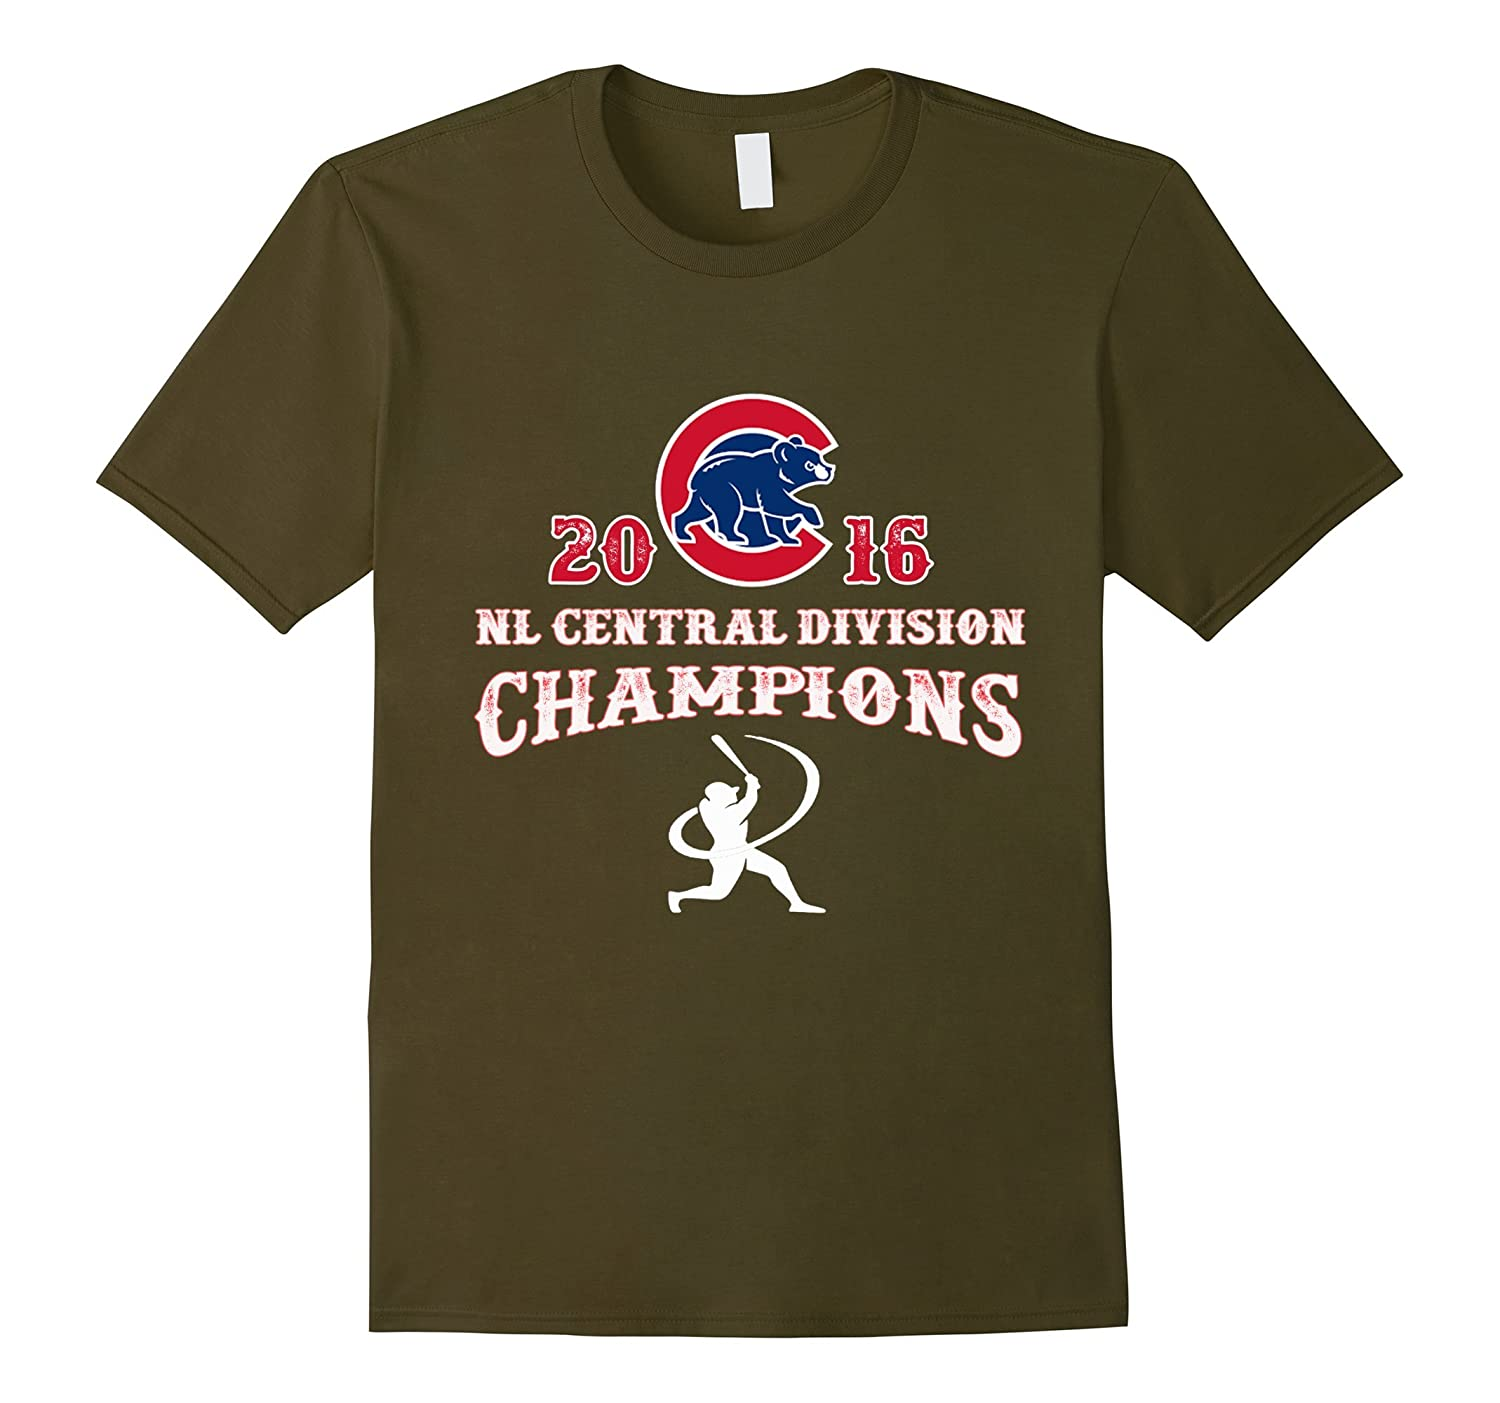 Finally We Clinched T shirt-CL